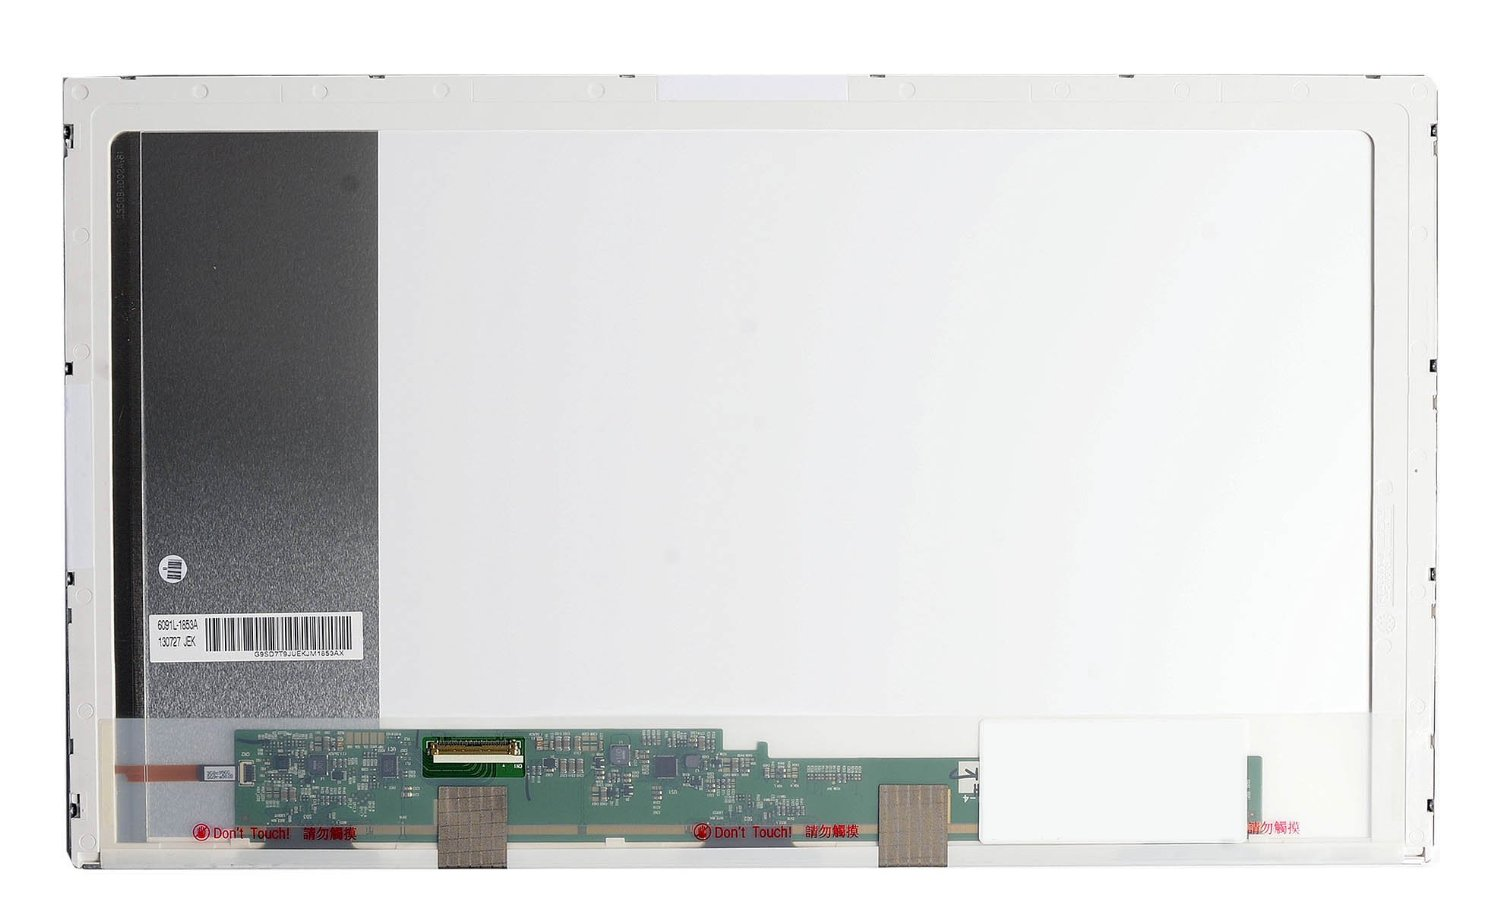 Фотография TTLCD Laptop LCD SCREEN for ACER ASPIRE E5-772 E5-772G E5-722 E5-722G E5-752G ES1-731 ES1-731G SERIES (17.3 inch 1600x900 30pin)